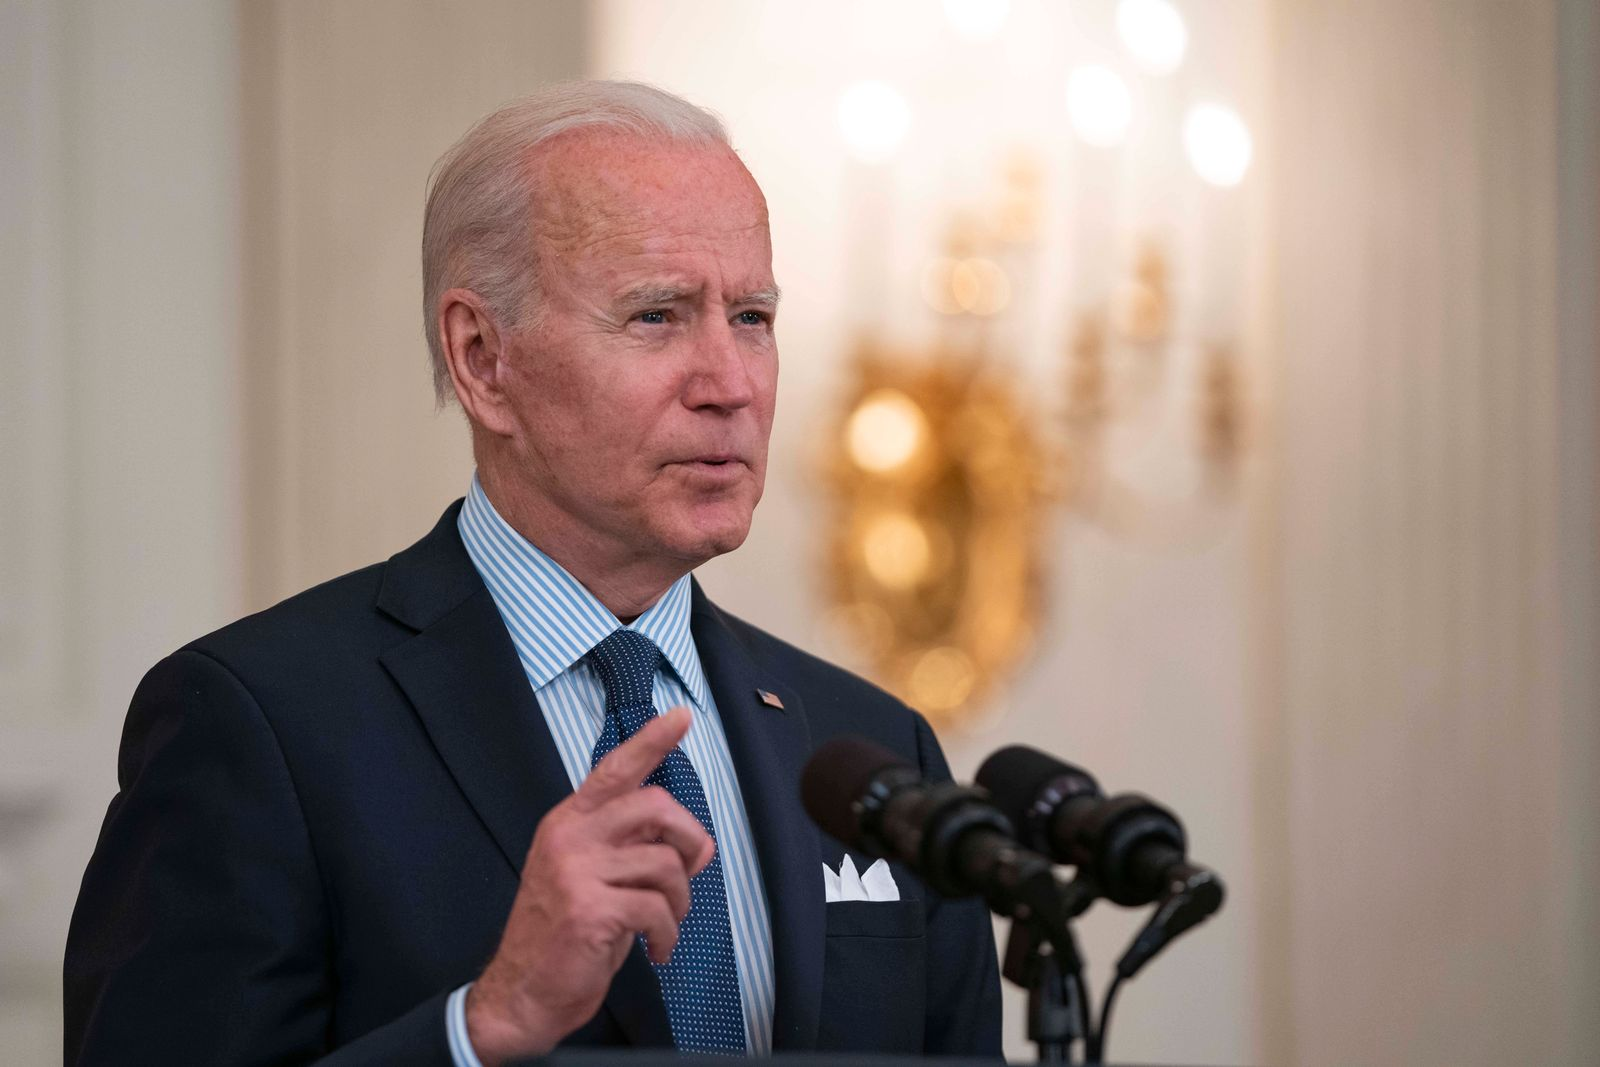 May 4, 2021, Washington, District of Columbia, USA: United States President Joe Biden delivers remarks on the Covid-19